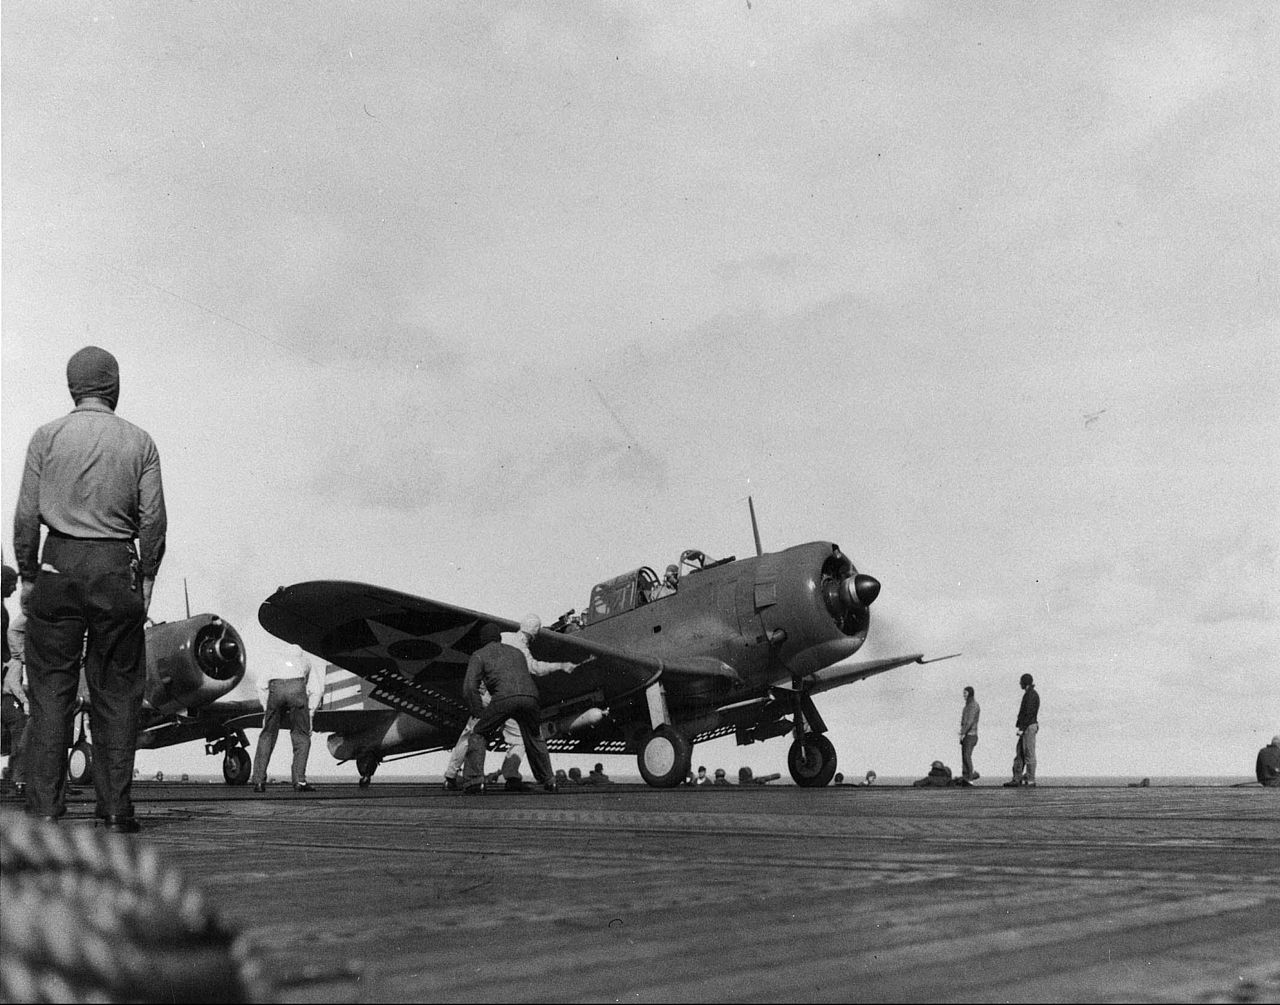 A bomb-laden SBD-2 Dauntless dive bomber prepares to take off from the U.S. carrier Enterprise during the raids on February 1.